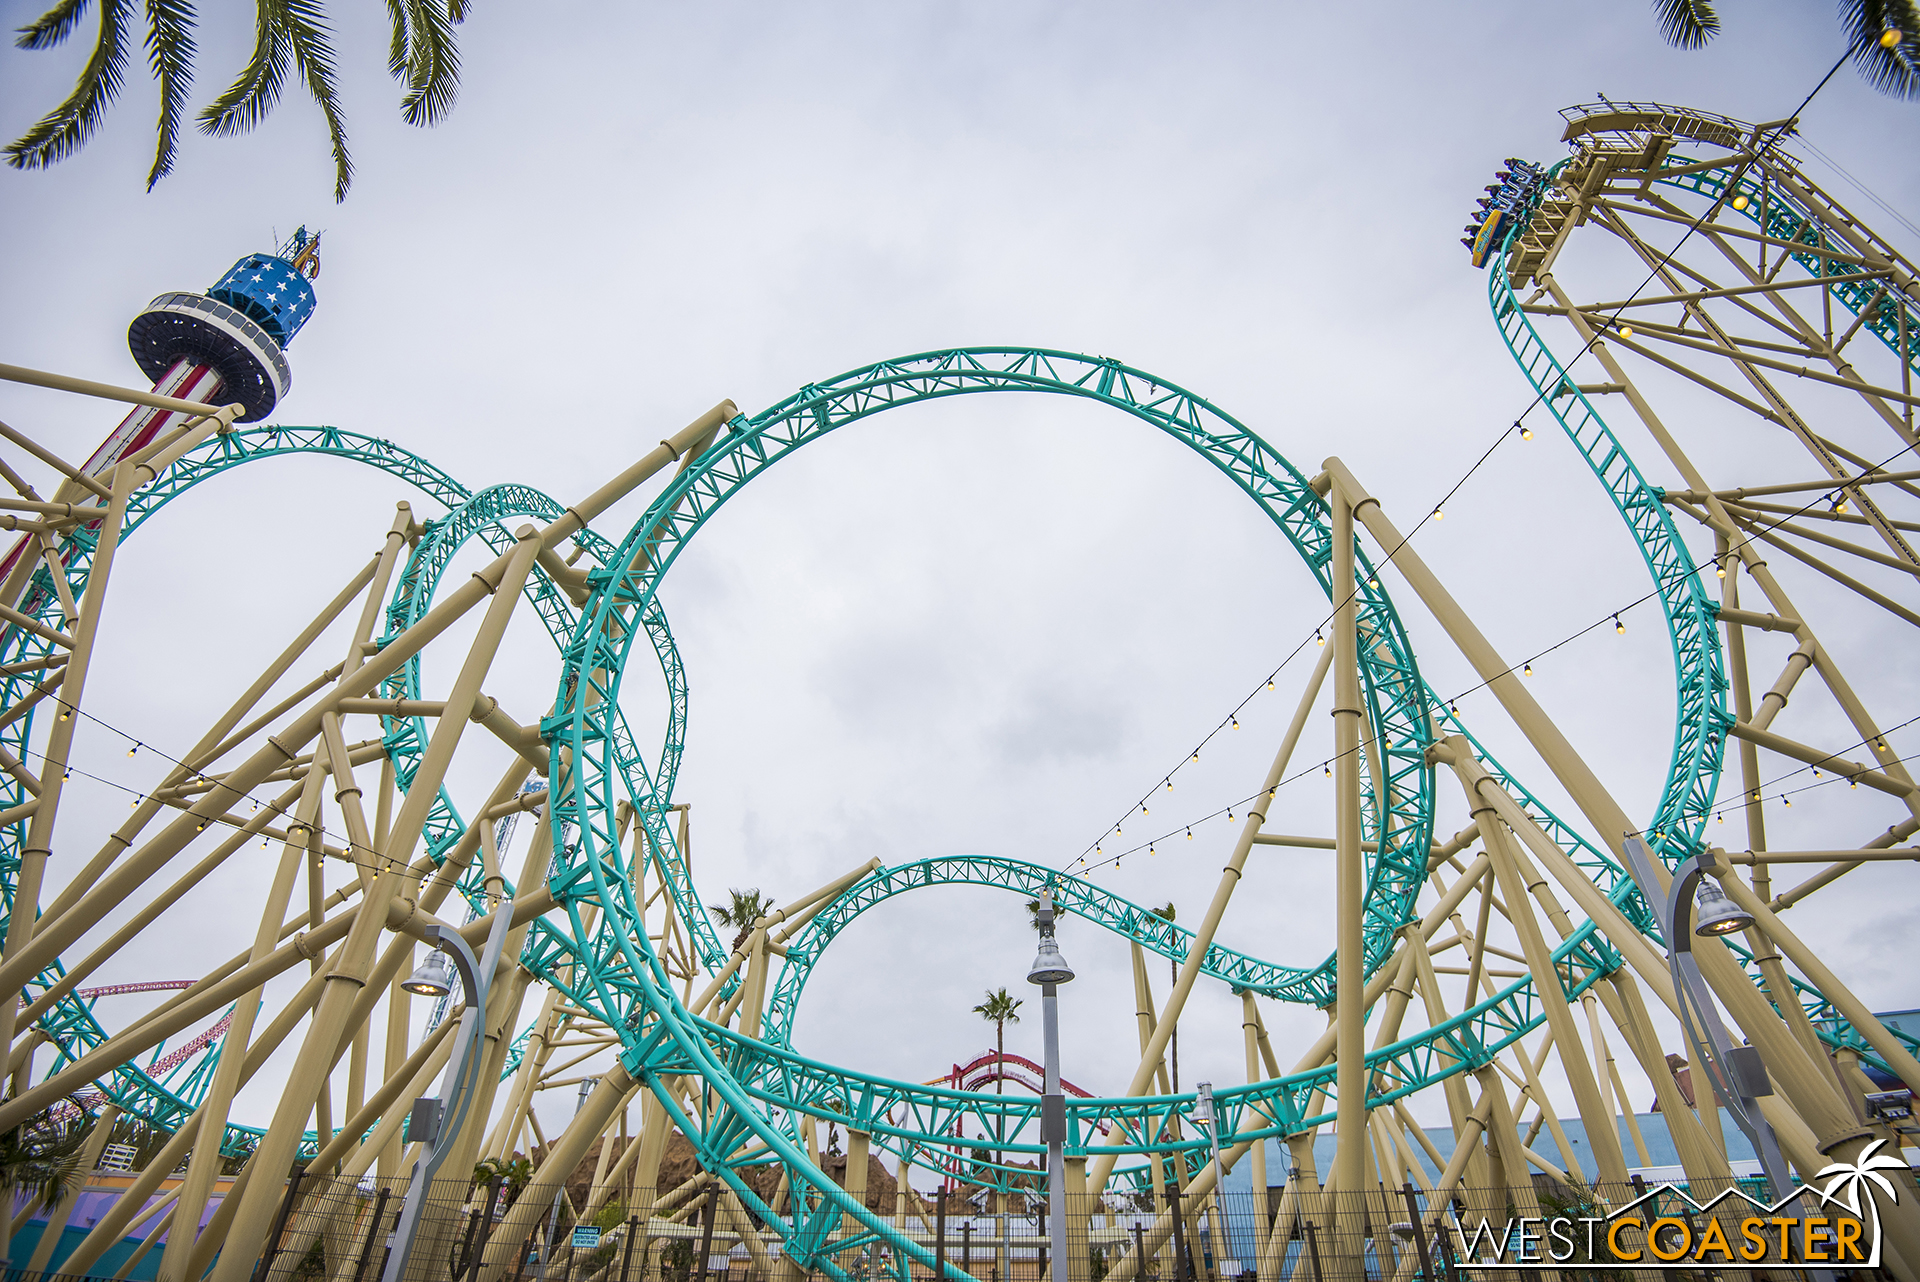 The first drop goes beyond 90° and is pretty darn cool.